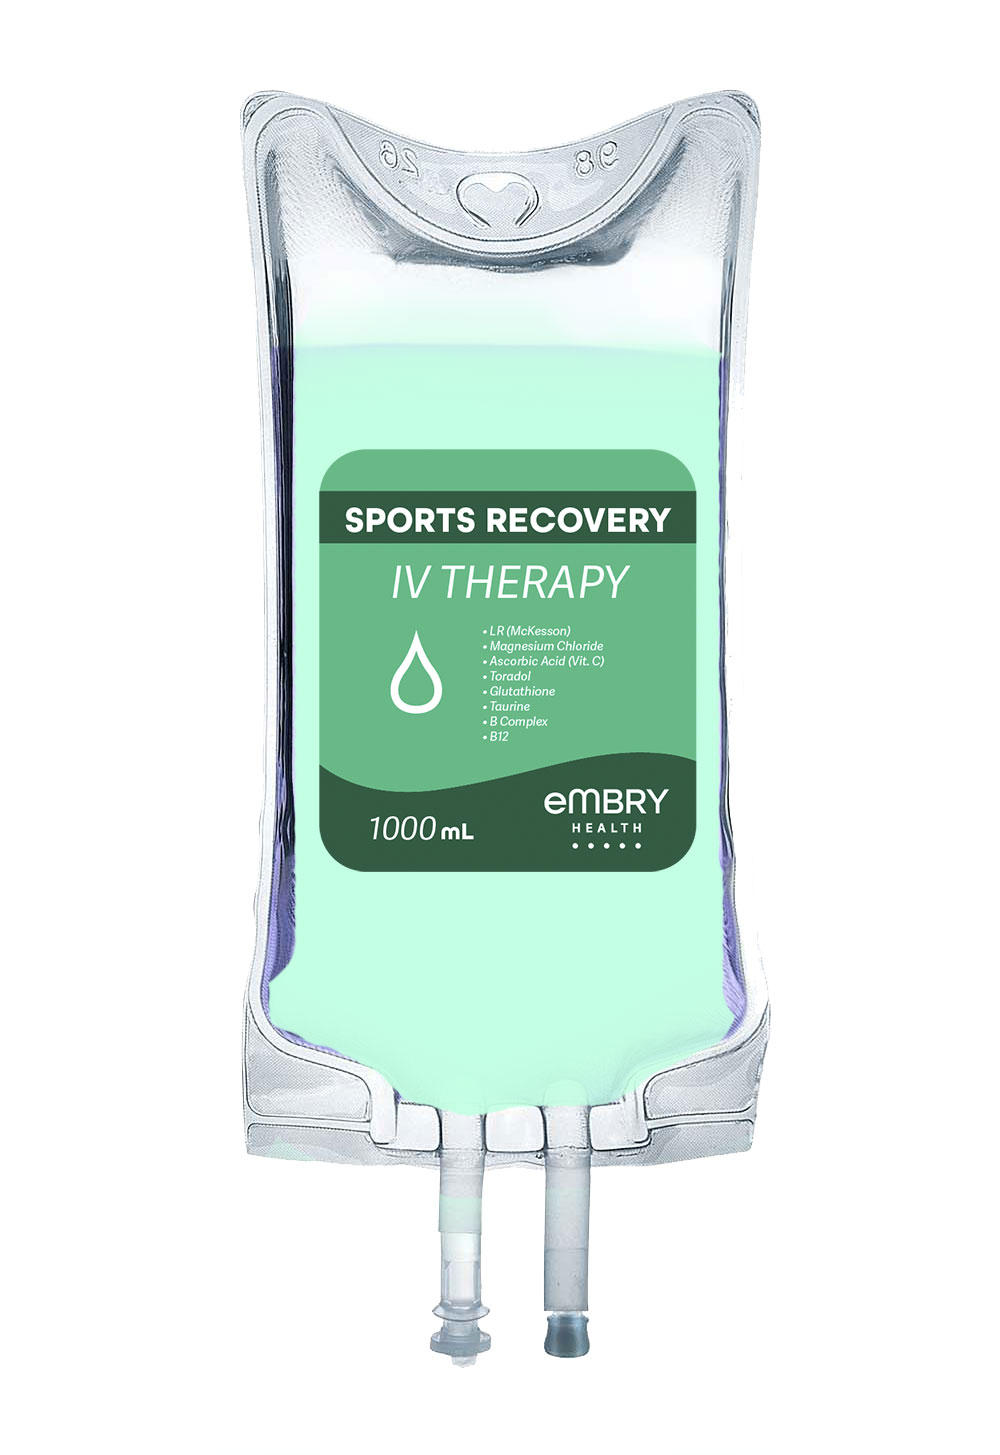 Includes a blend of IV fluids and electrolytes formulated for quick hydration leaving you feeling revitalized and refreshed.